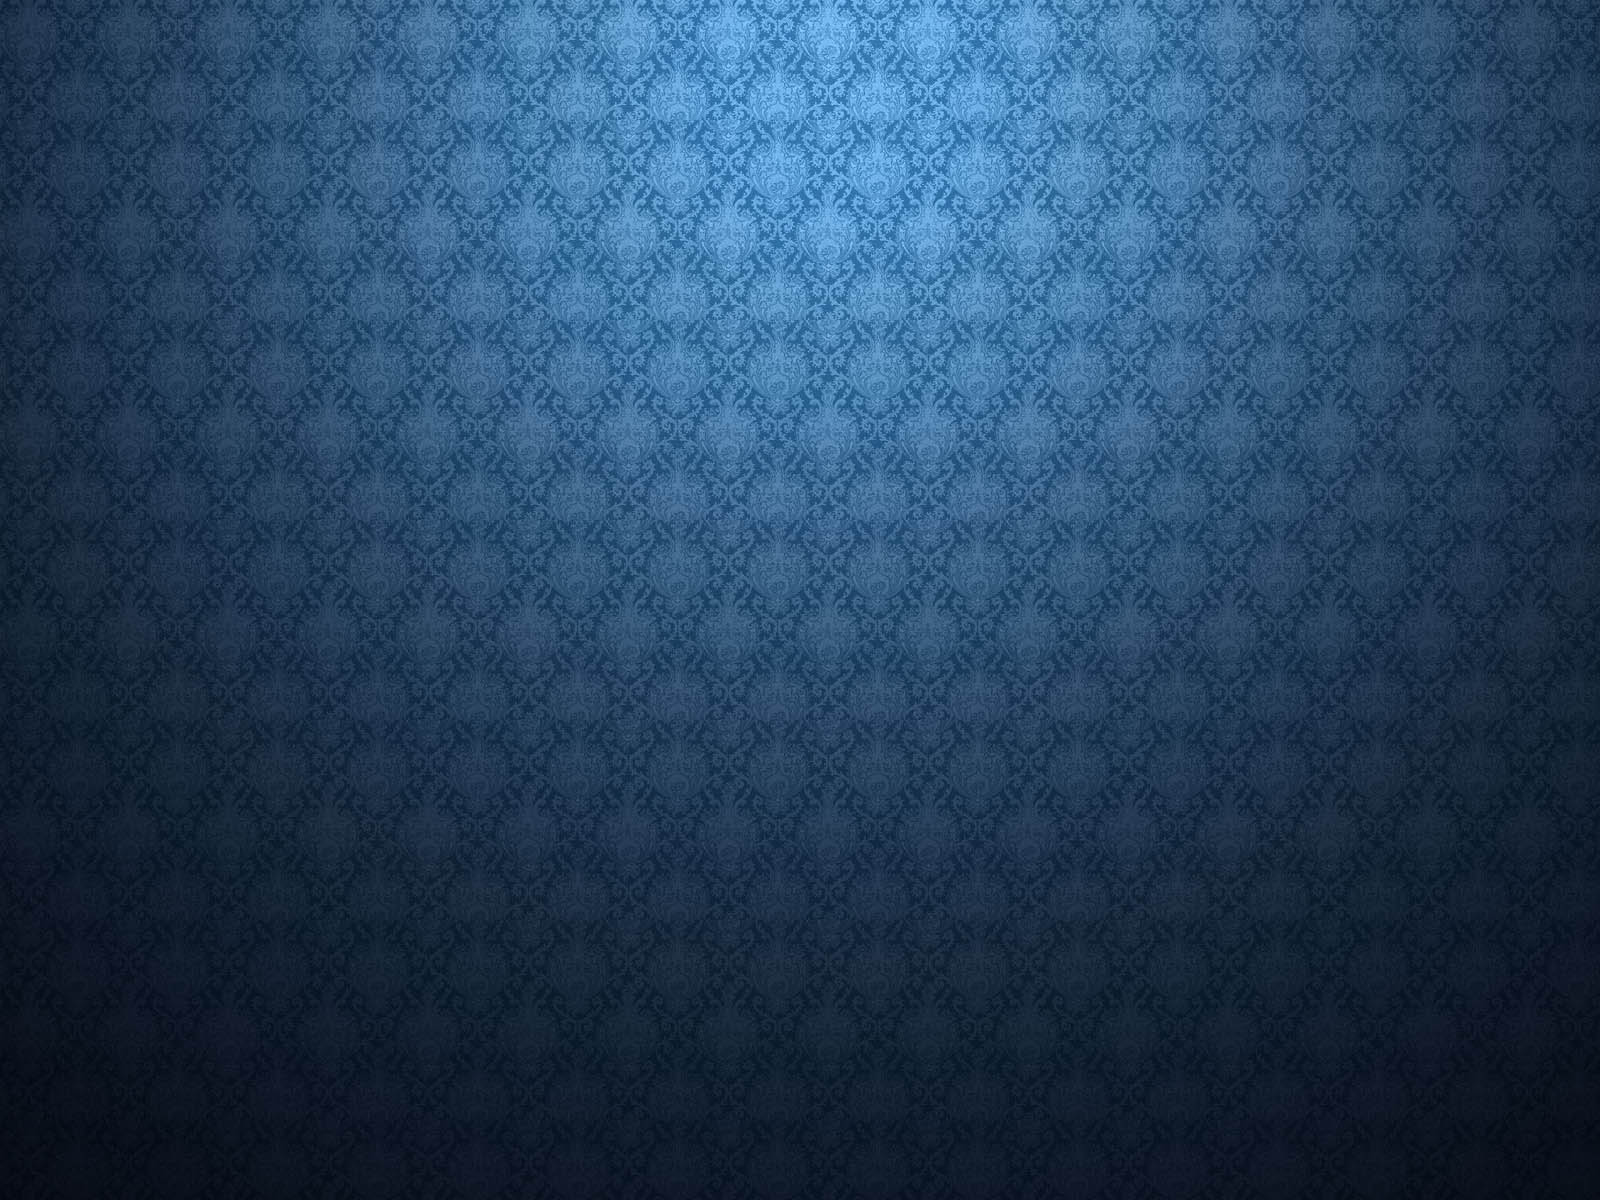 Cute Tom And Jerry Wallpapers Wallpapers Pattern